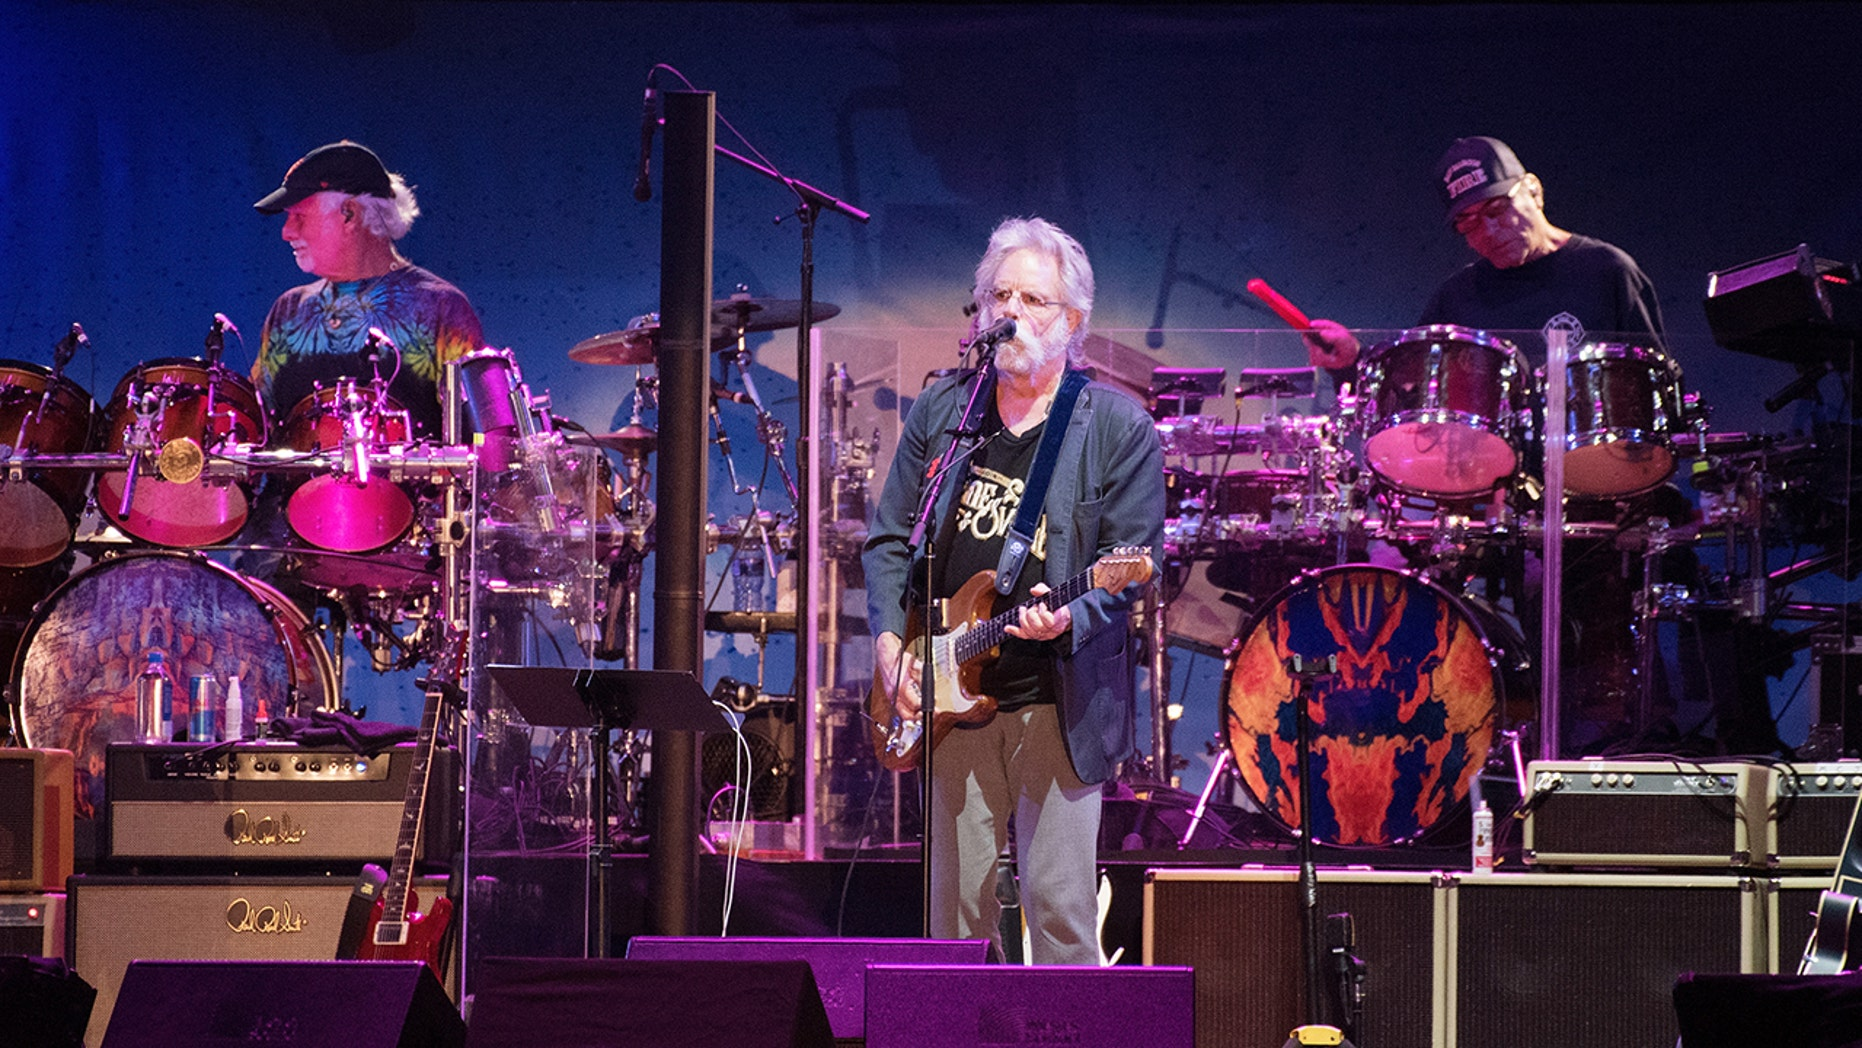 SAN FRANCISCO, CA - NOVEMBER 09: Bill Kreutzmann, Bob Weir and Mickey Hart of Dead and Company perform during the Band Together Bay Area Benefit Concert at AT